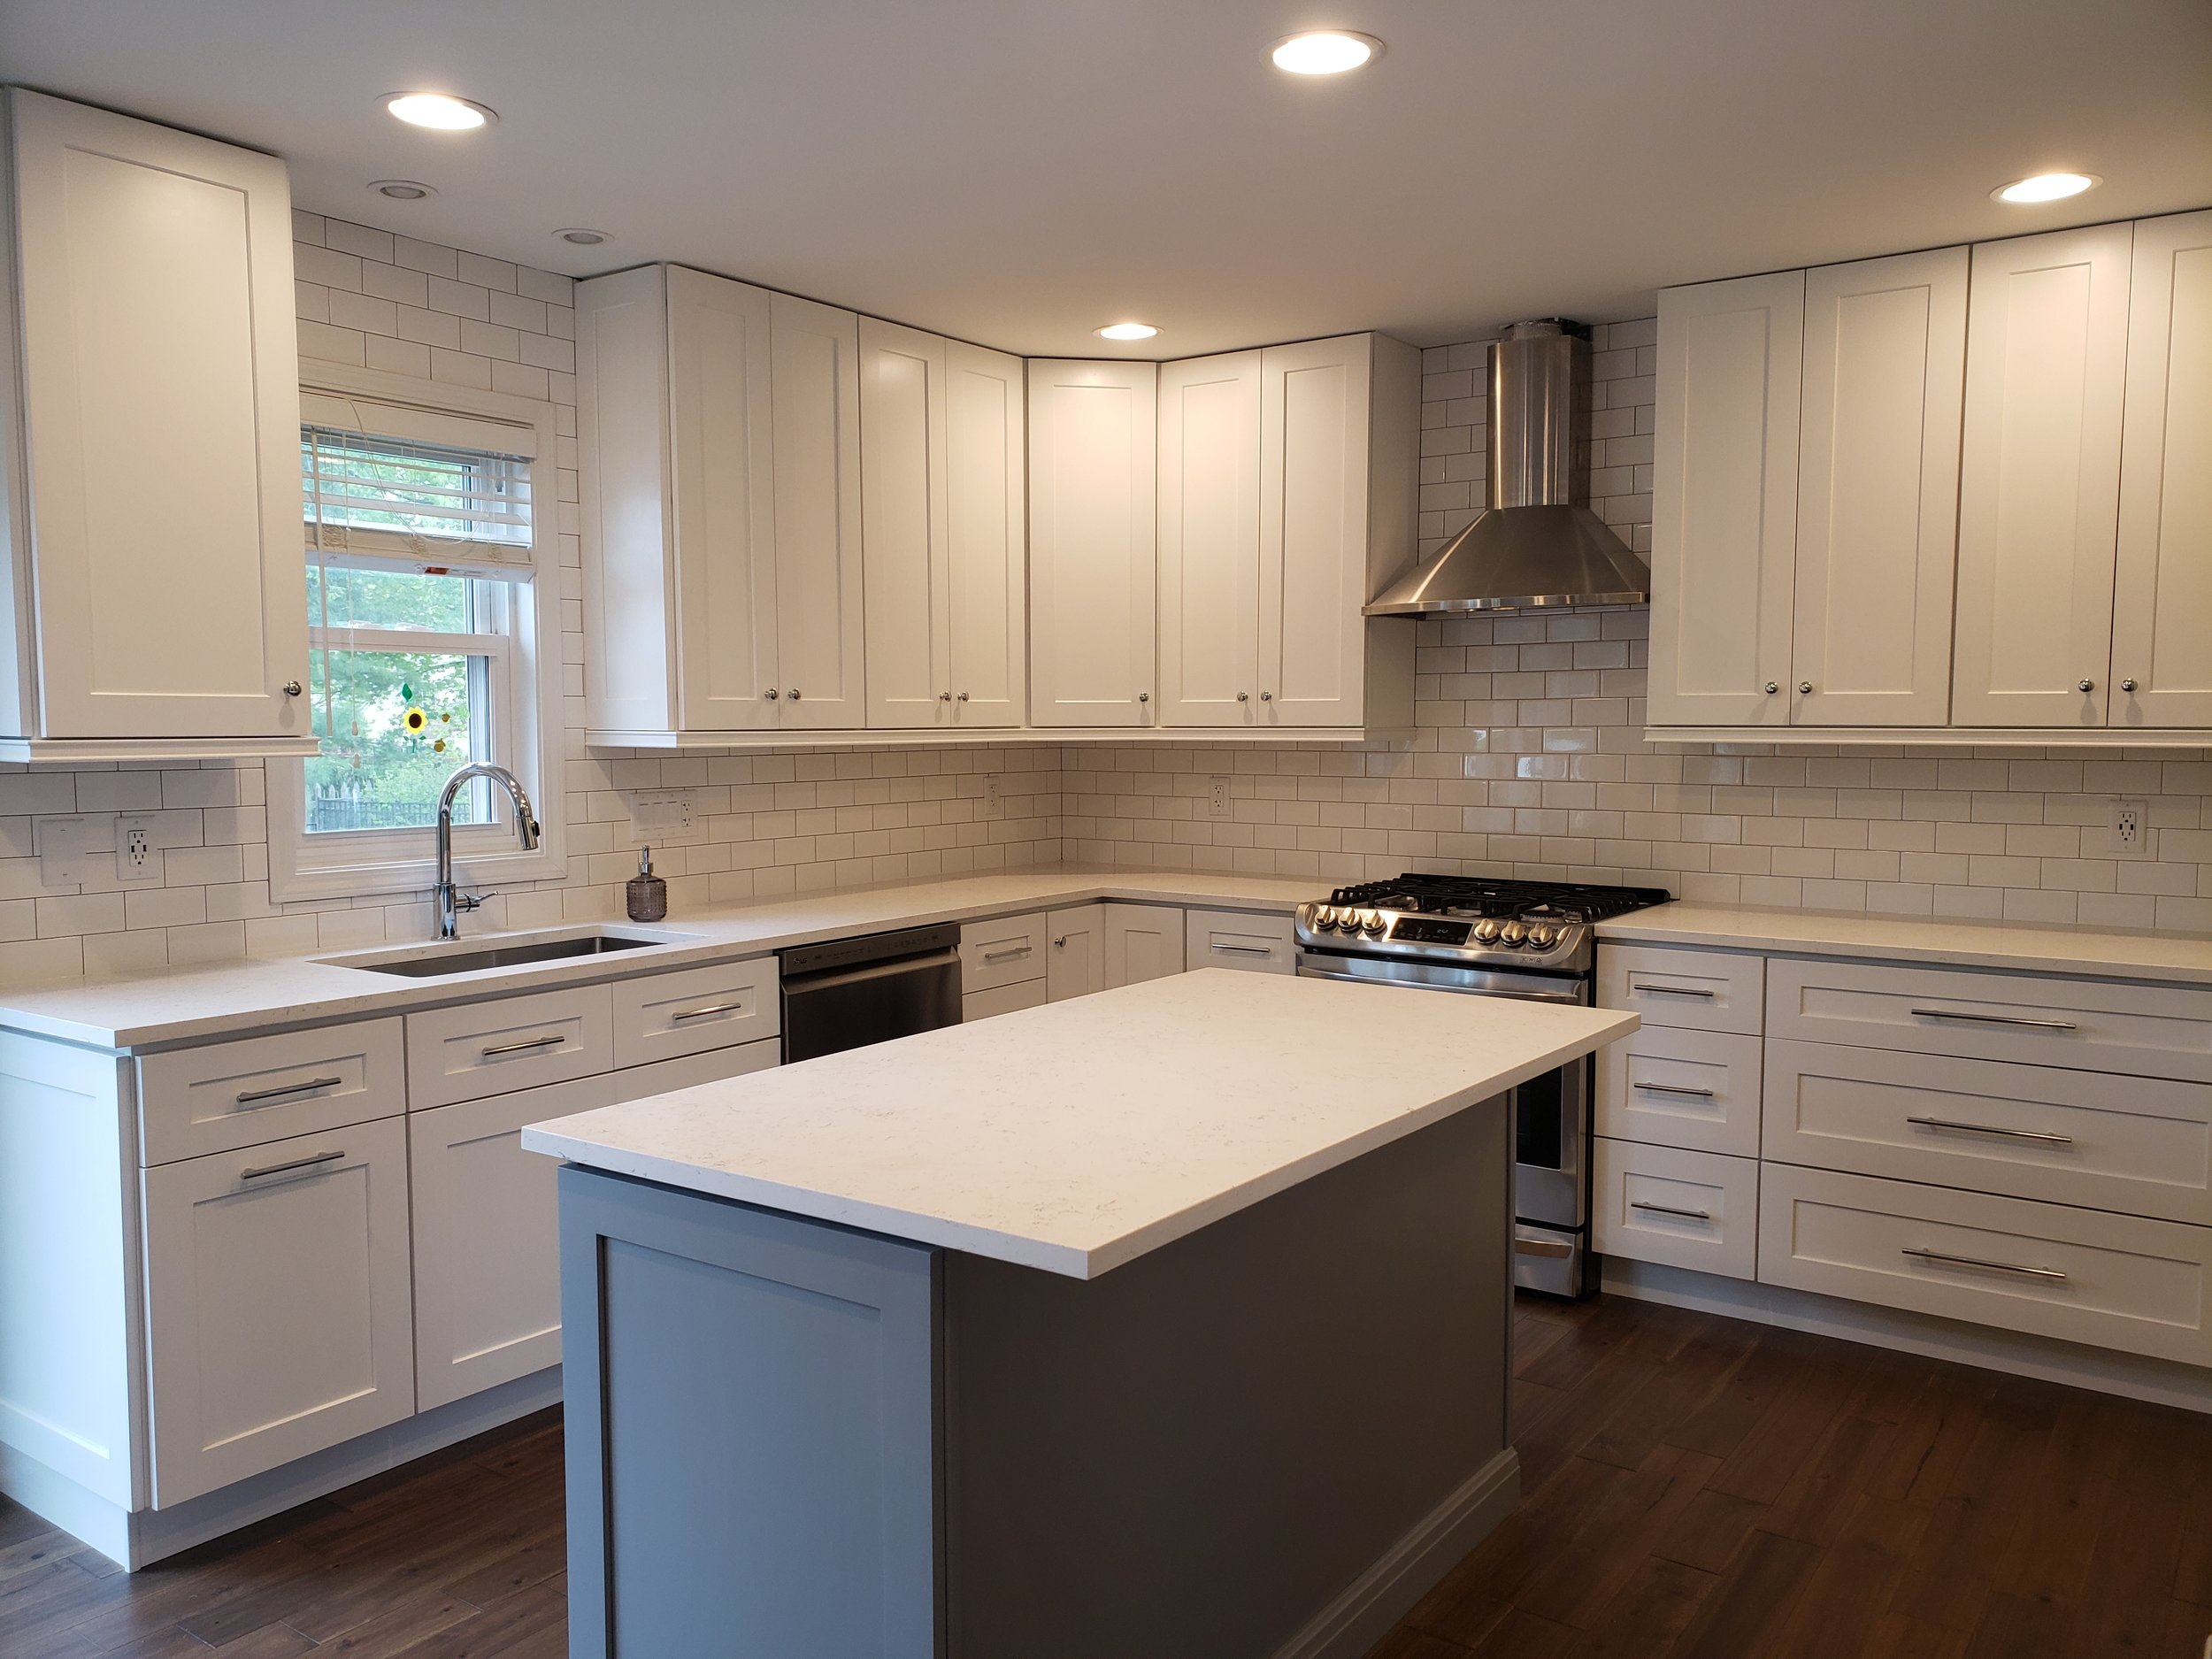 Naperville Kitchen Remodeling - May 2019 - Kure Construction Inc. recently remodeled a Kitchen for a Naperville Homeowner.